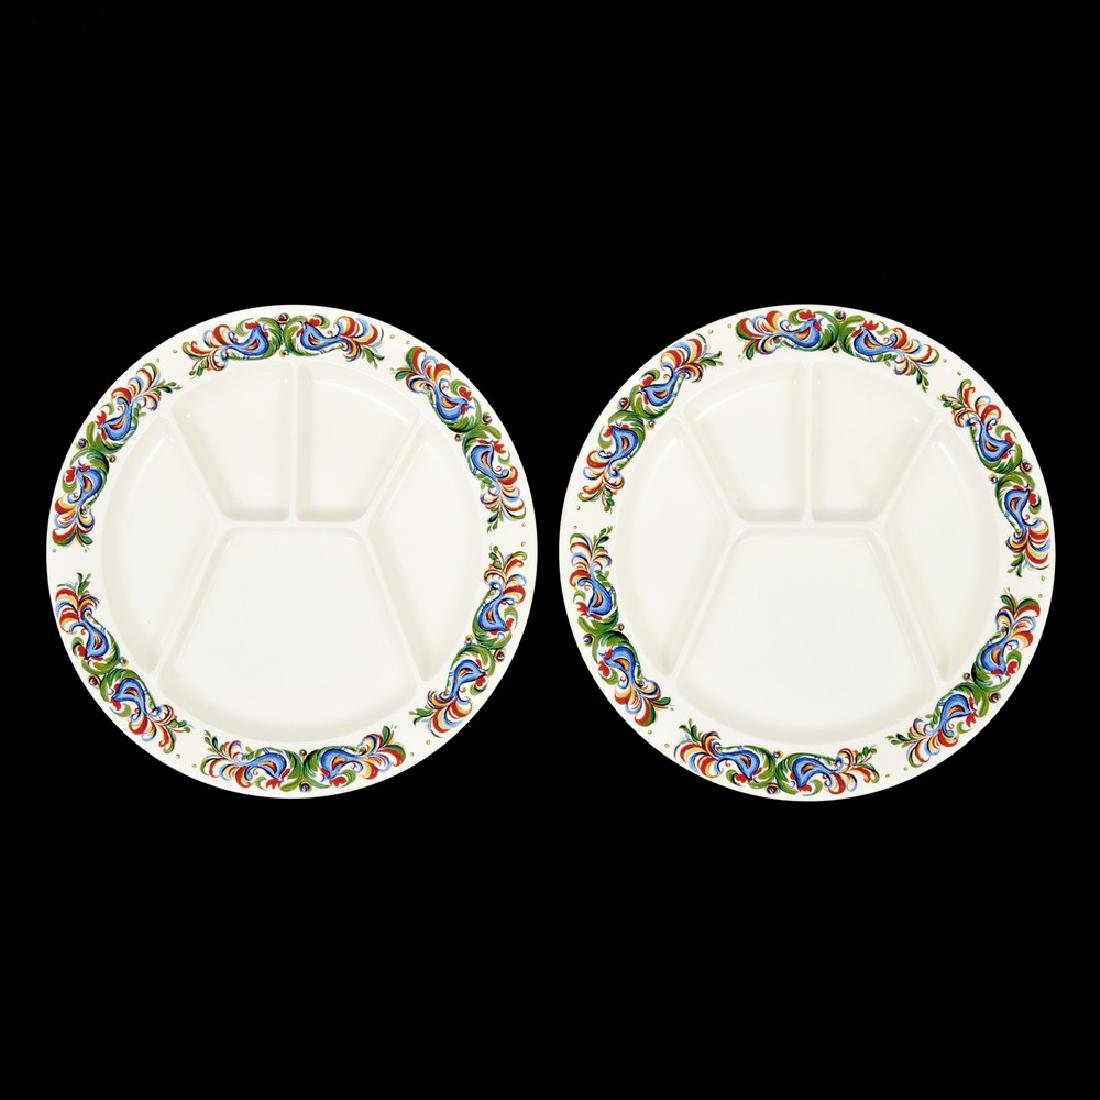 Pair of Villeroy & Boch Sectioned/Fondue Plates